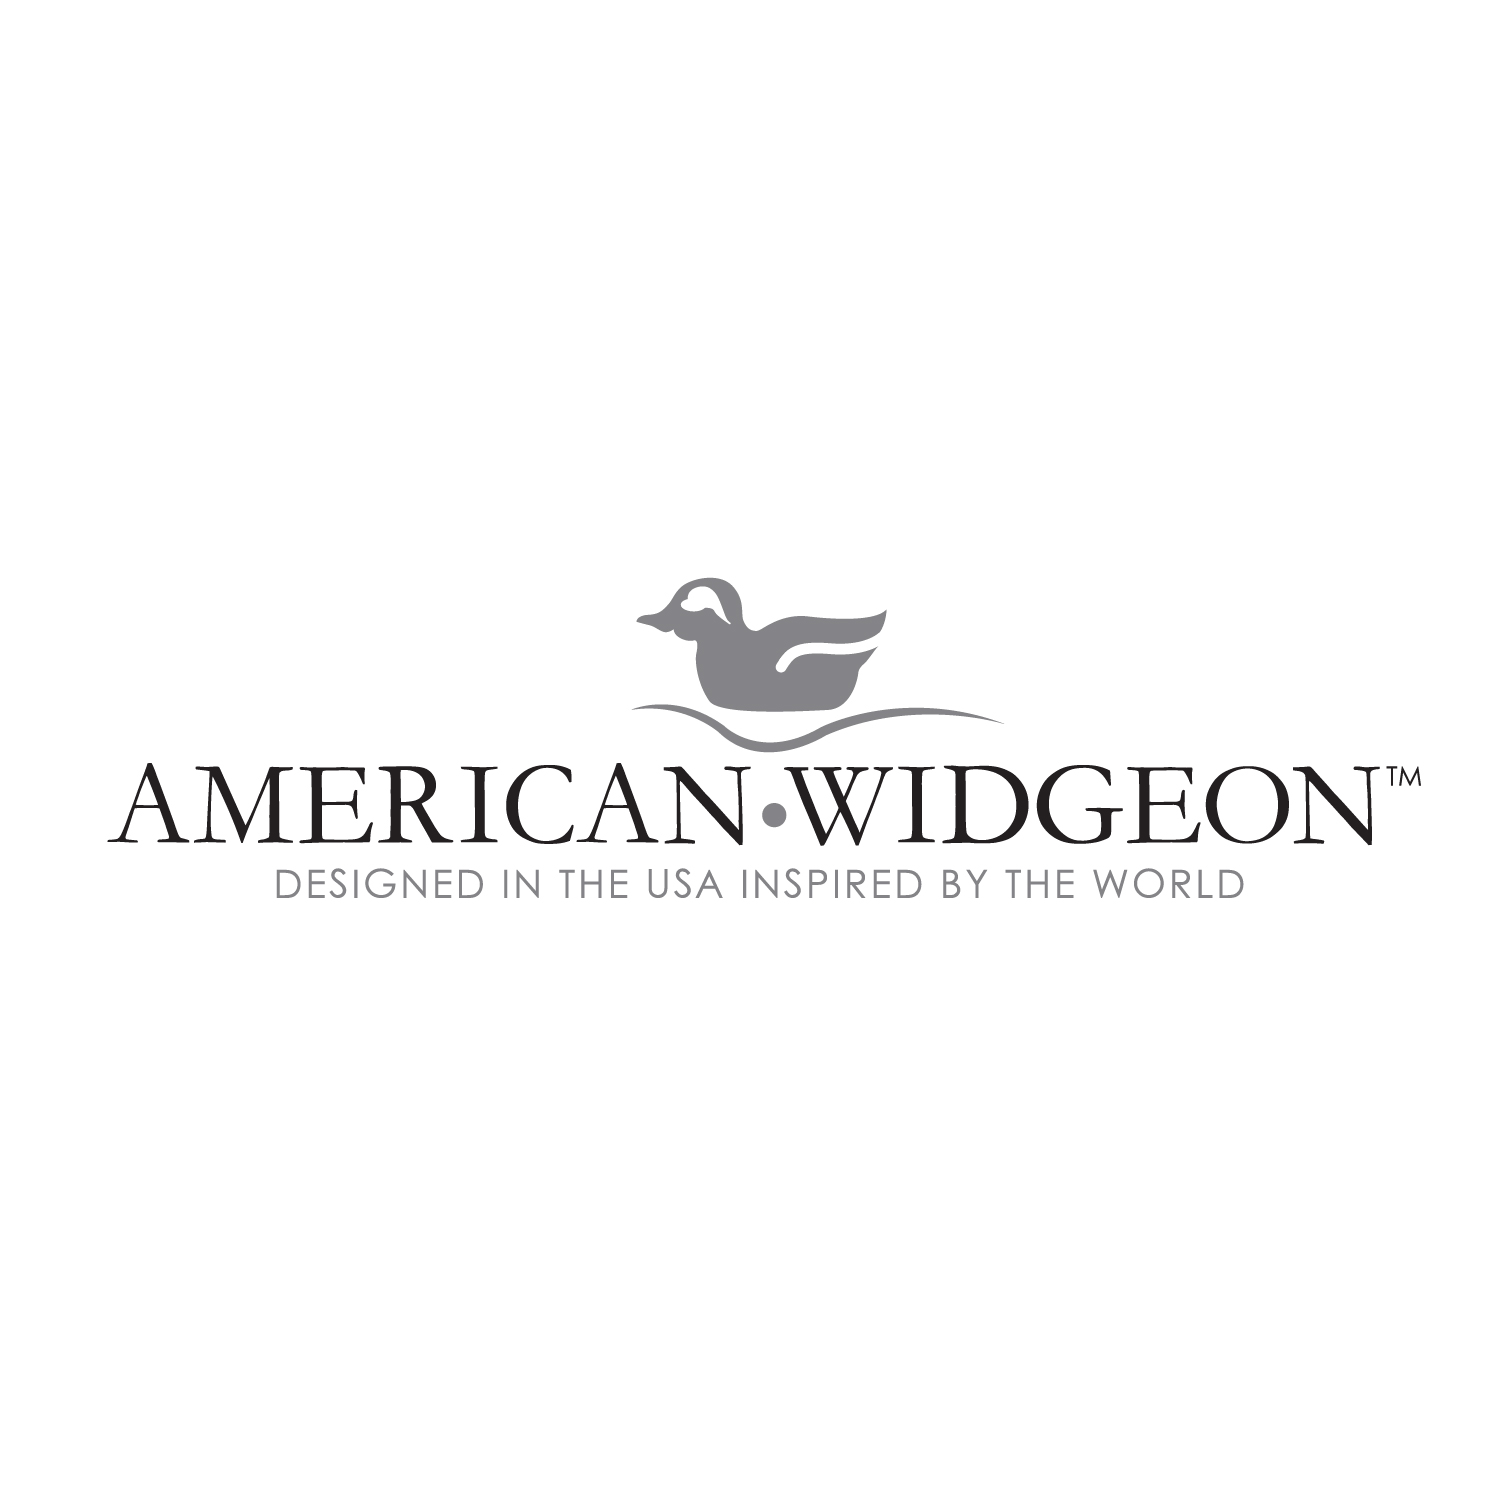 widgeon logo square.jpg